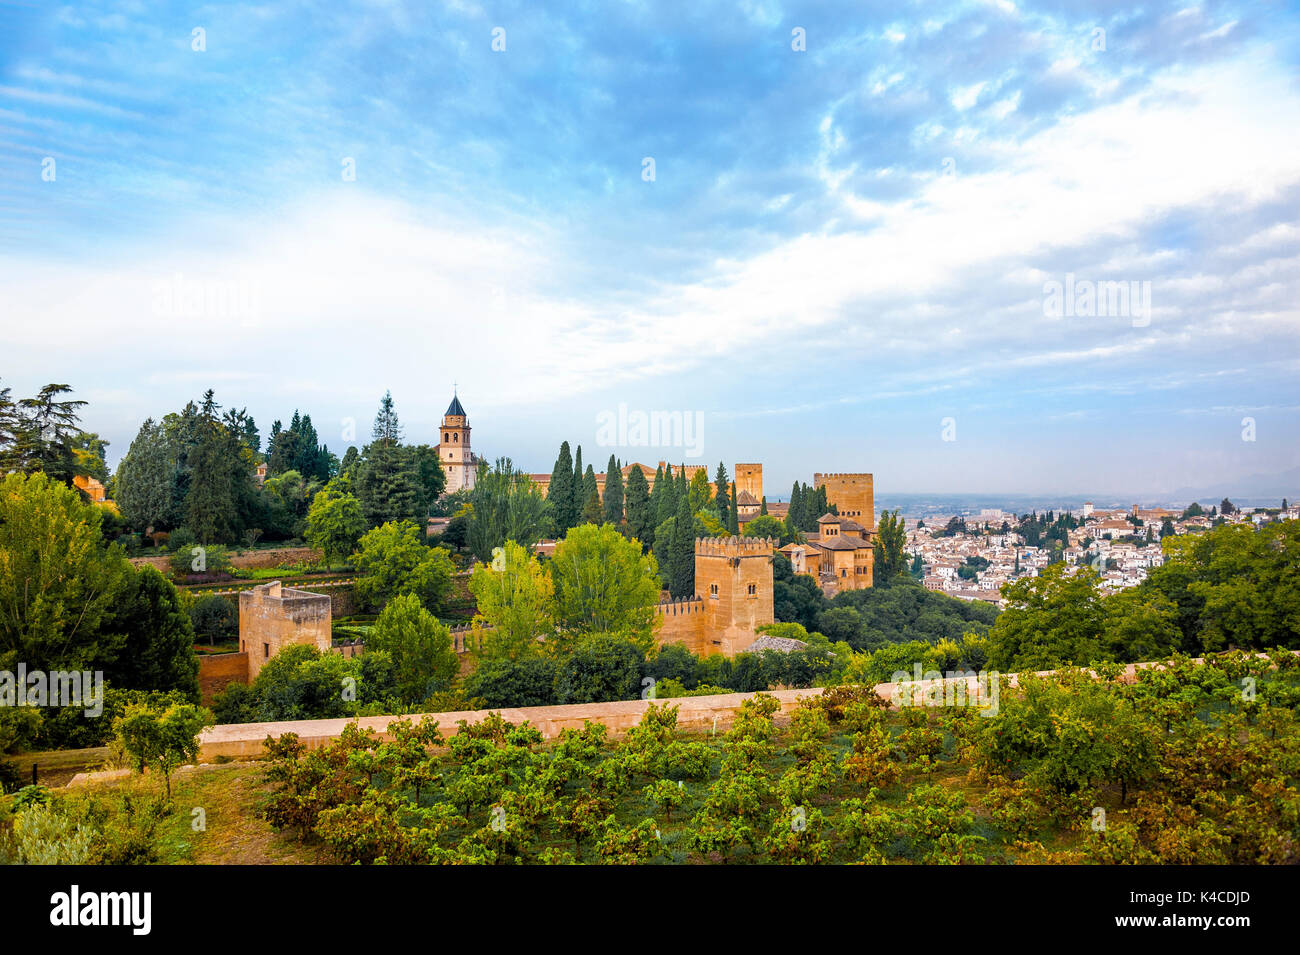 Alhambra In Granada, View To The Nasrid Palace And The Alcazaba, Seen From The Gardens Of The Generalife, Andalusia, Stock Photo